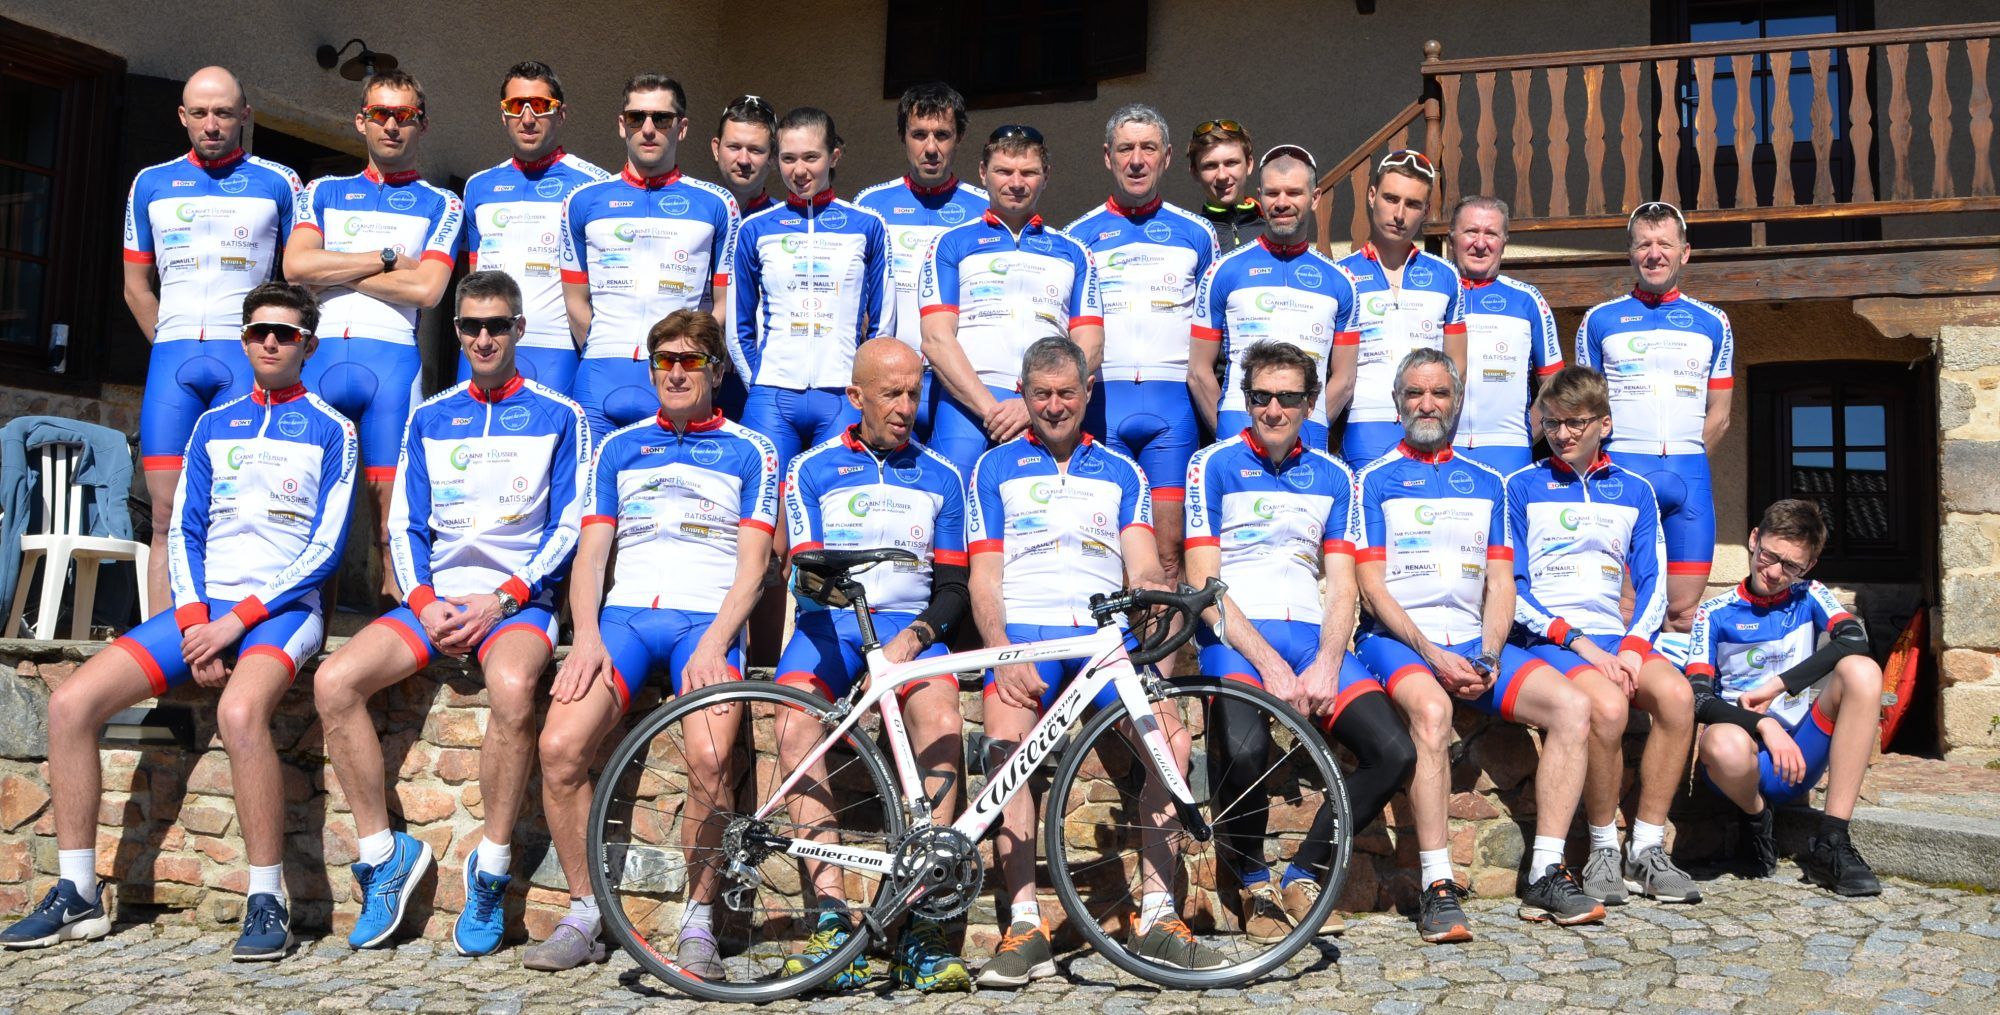 Le site officiel du vélo club de Francheville